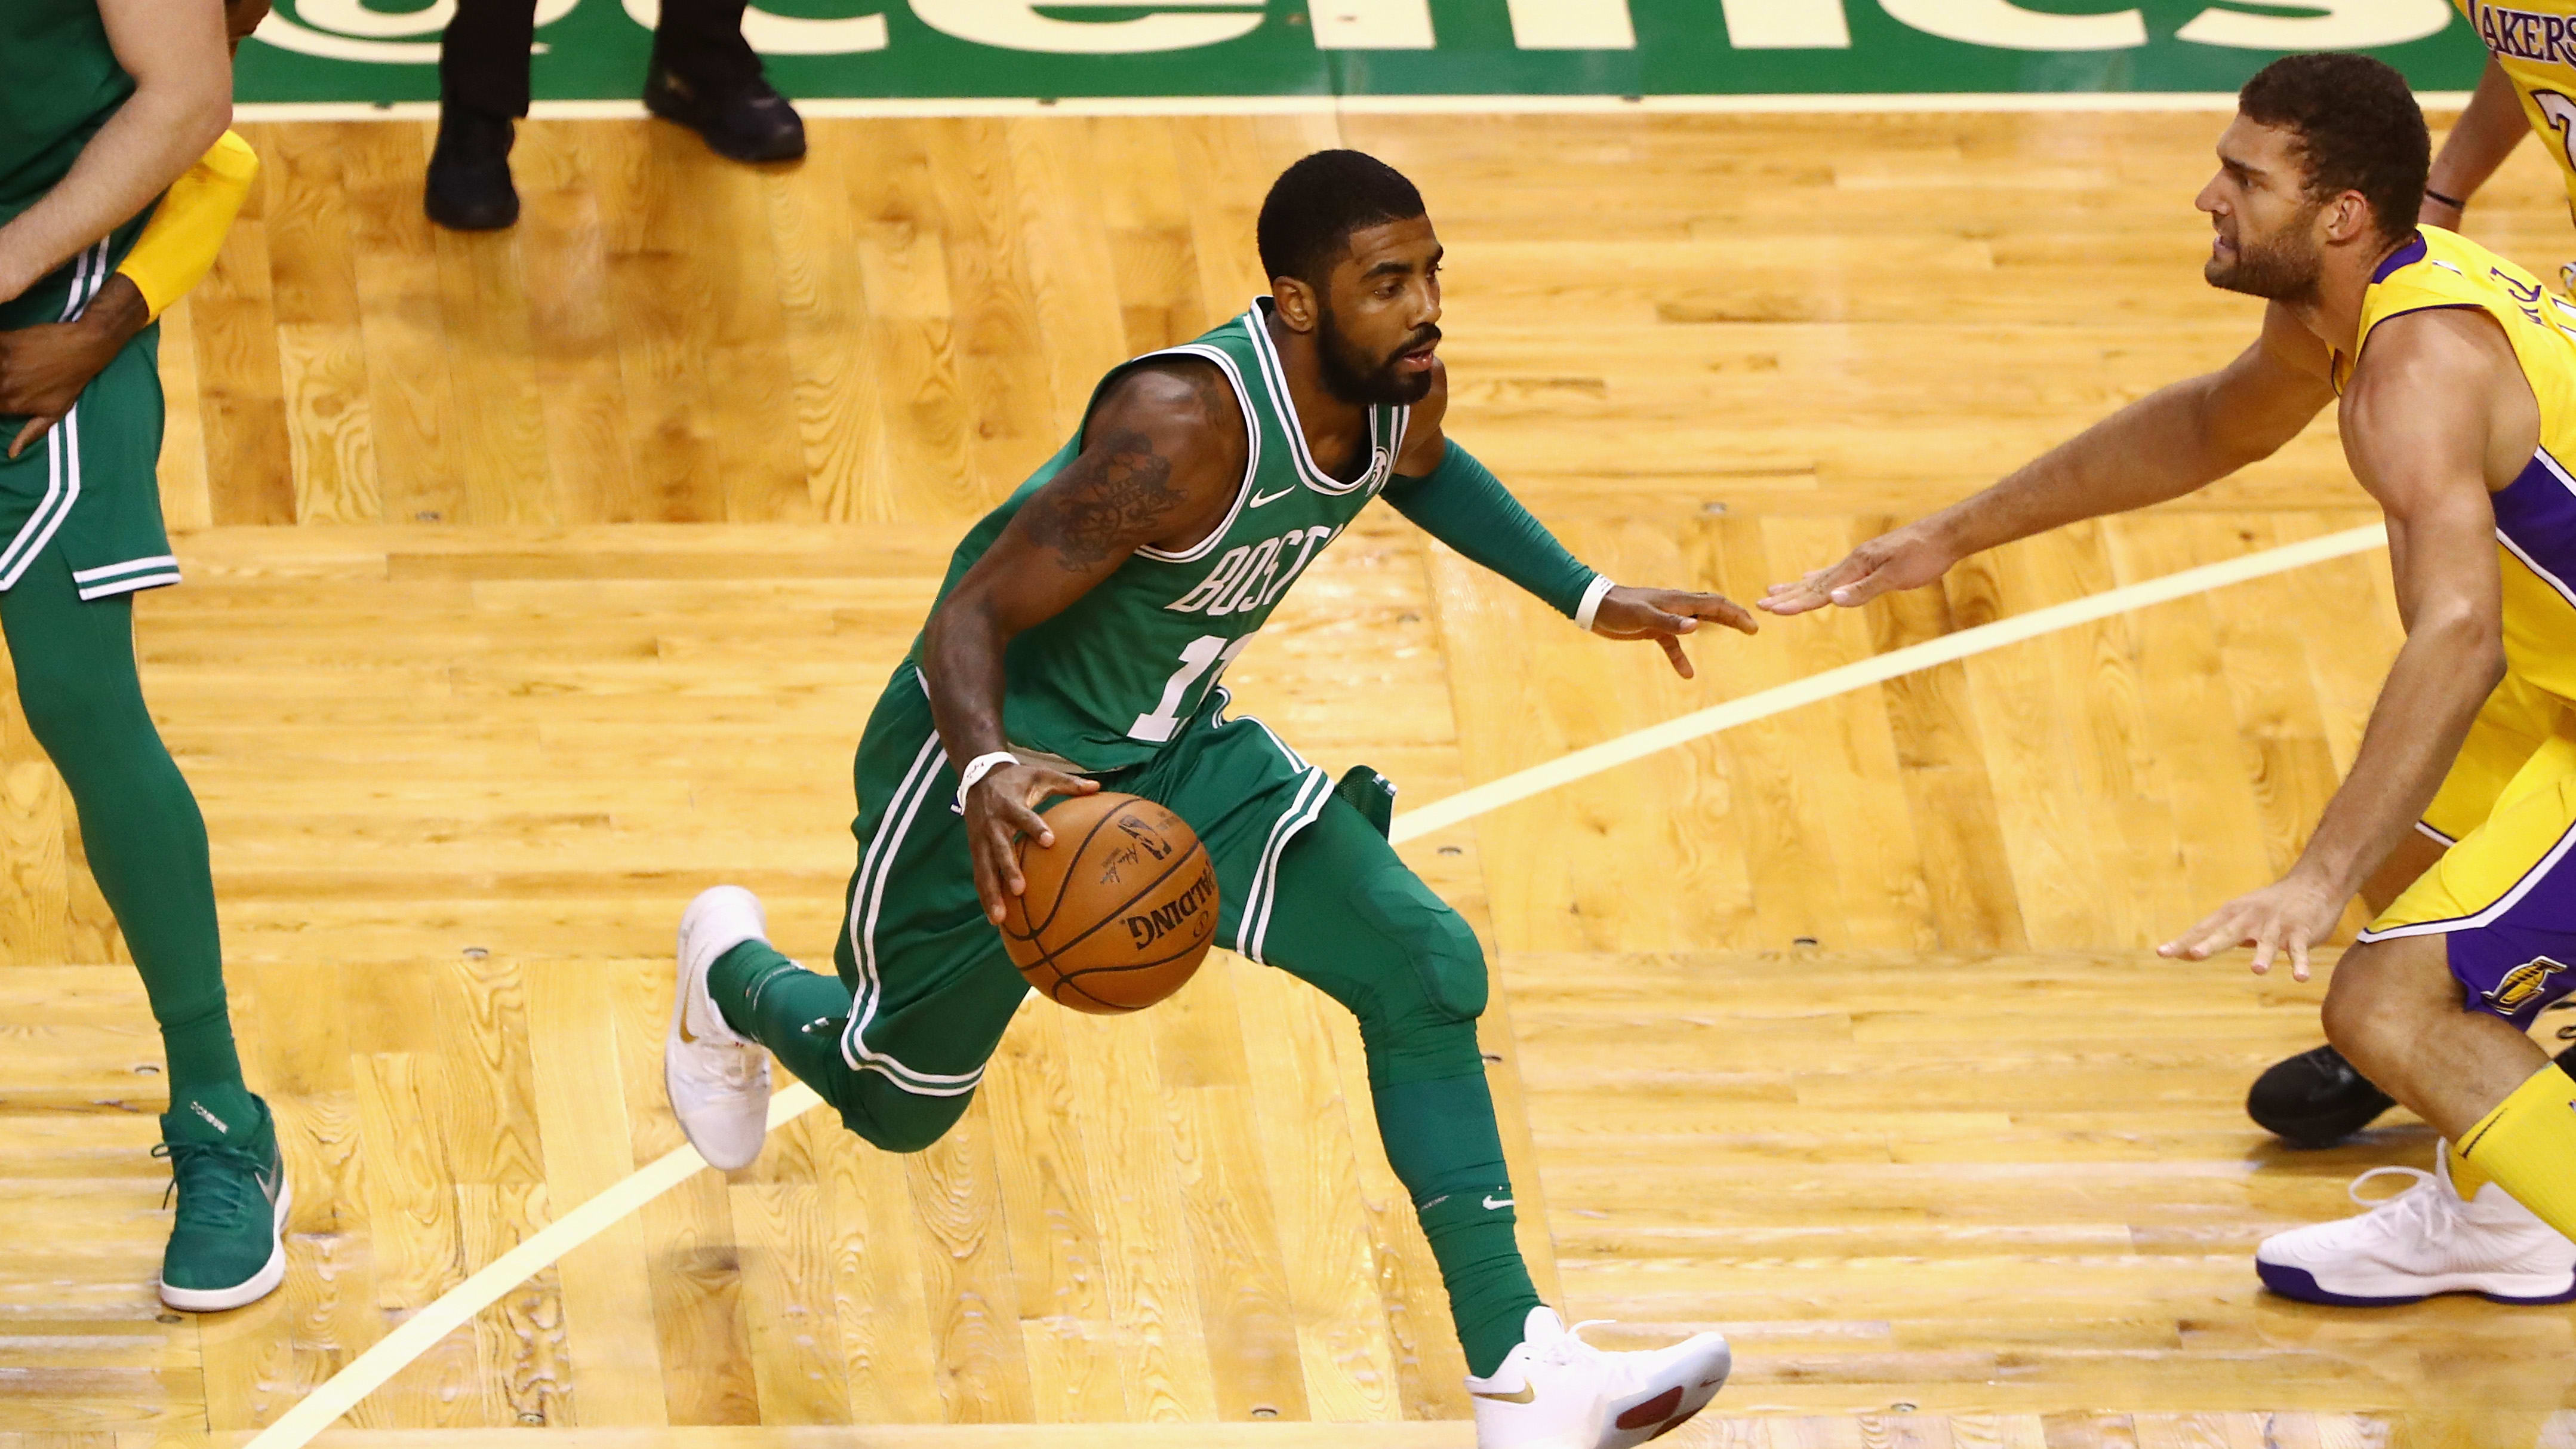 BOSTON, MA - NOVEMBER 08:  Kyrie Irving #11 of the Boston Celtics dribbles the ball during the fourth quarter against the Los Angeles Lakers at TD Garden on November 8, 2017 in Boston, Massachusetts.  (Photo by Tim Bradbury/Getty Images)